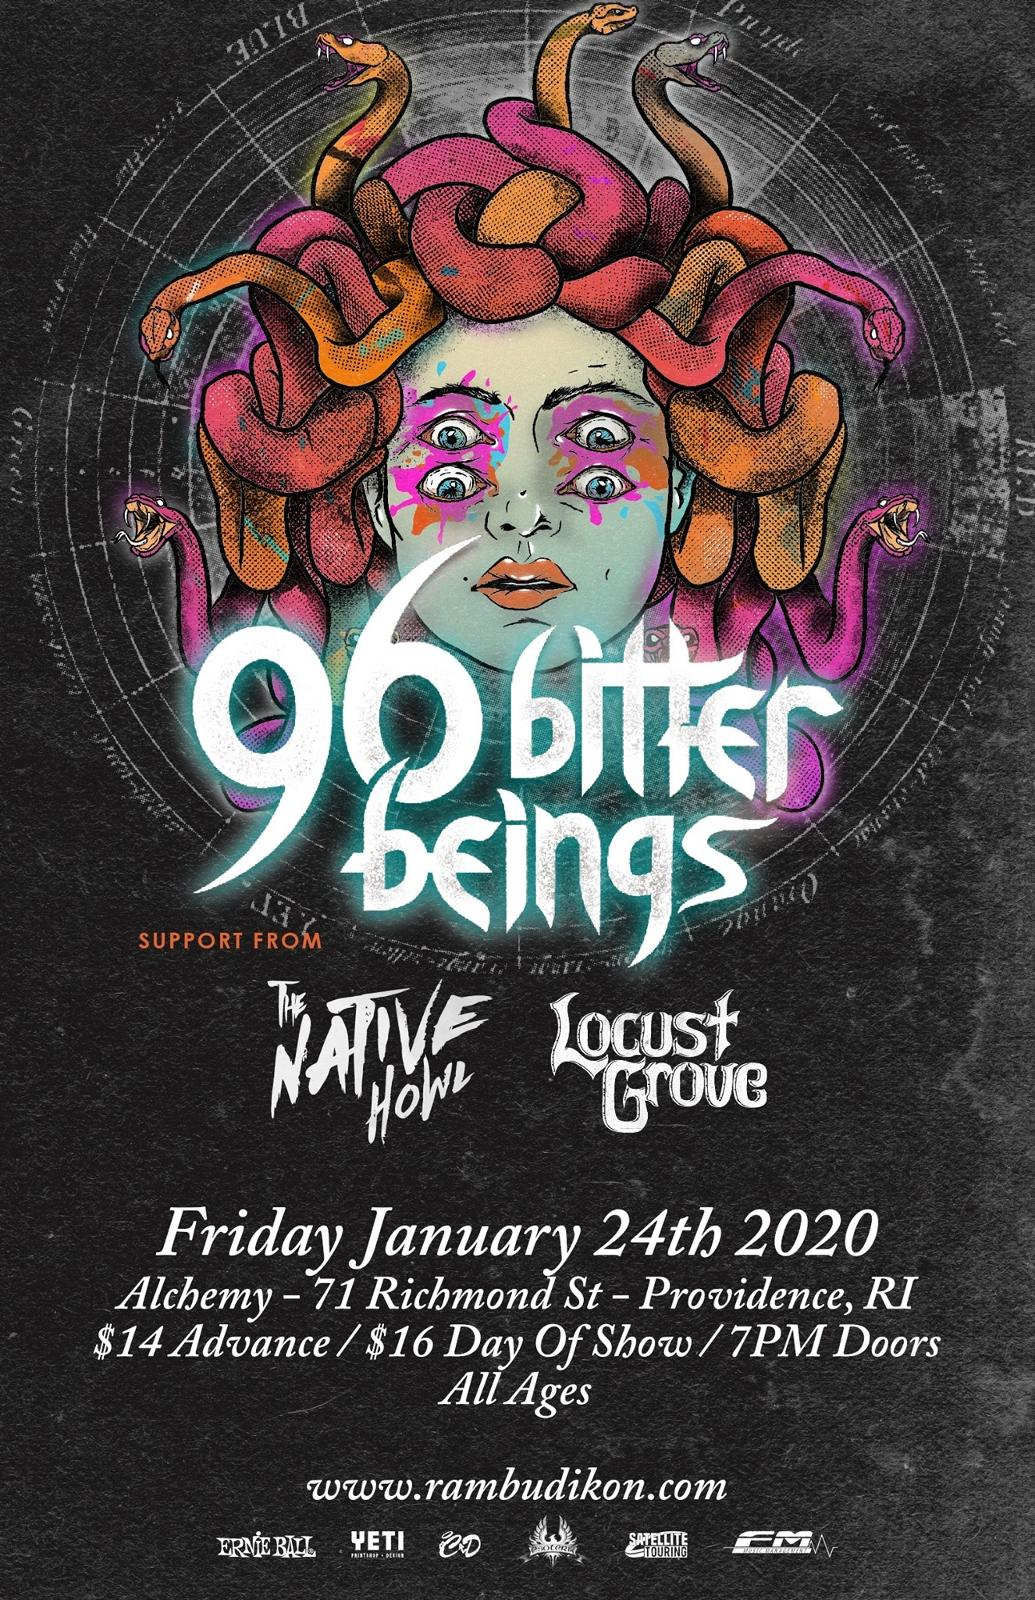 96 Bitter Beings | The Native Howl | Locust Grove